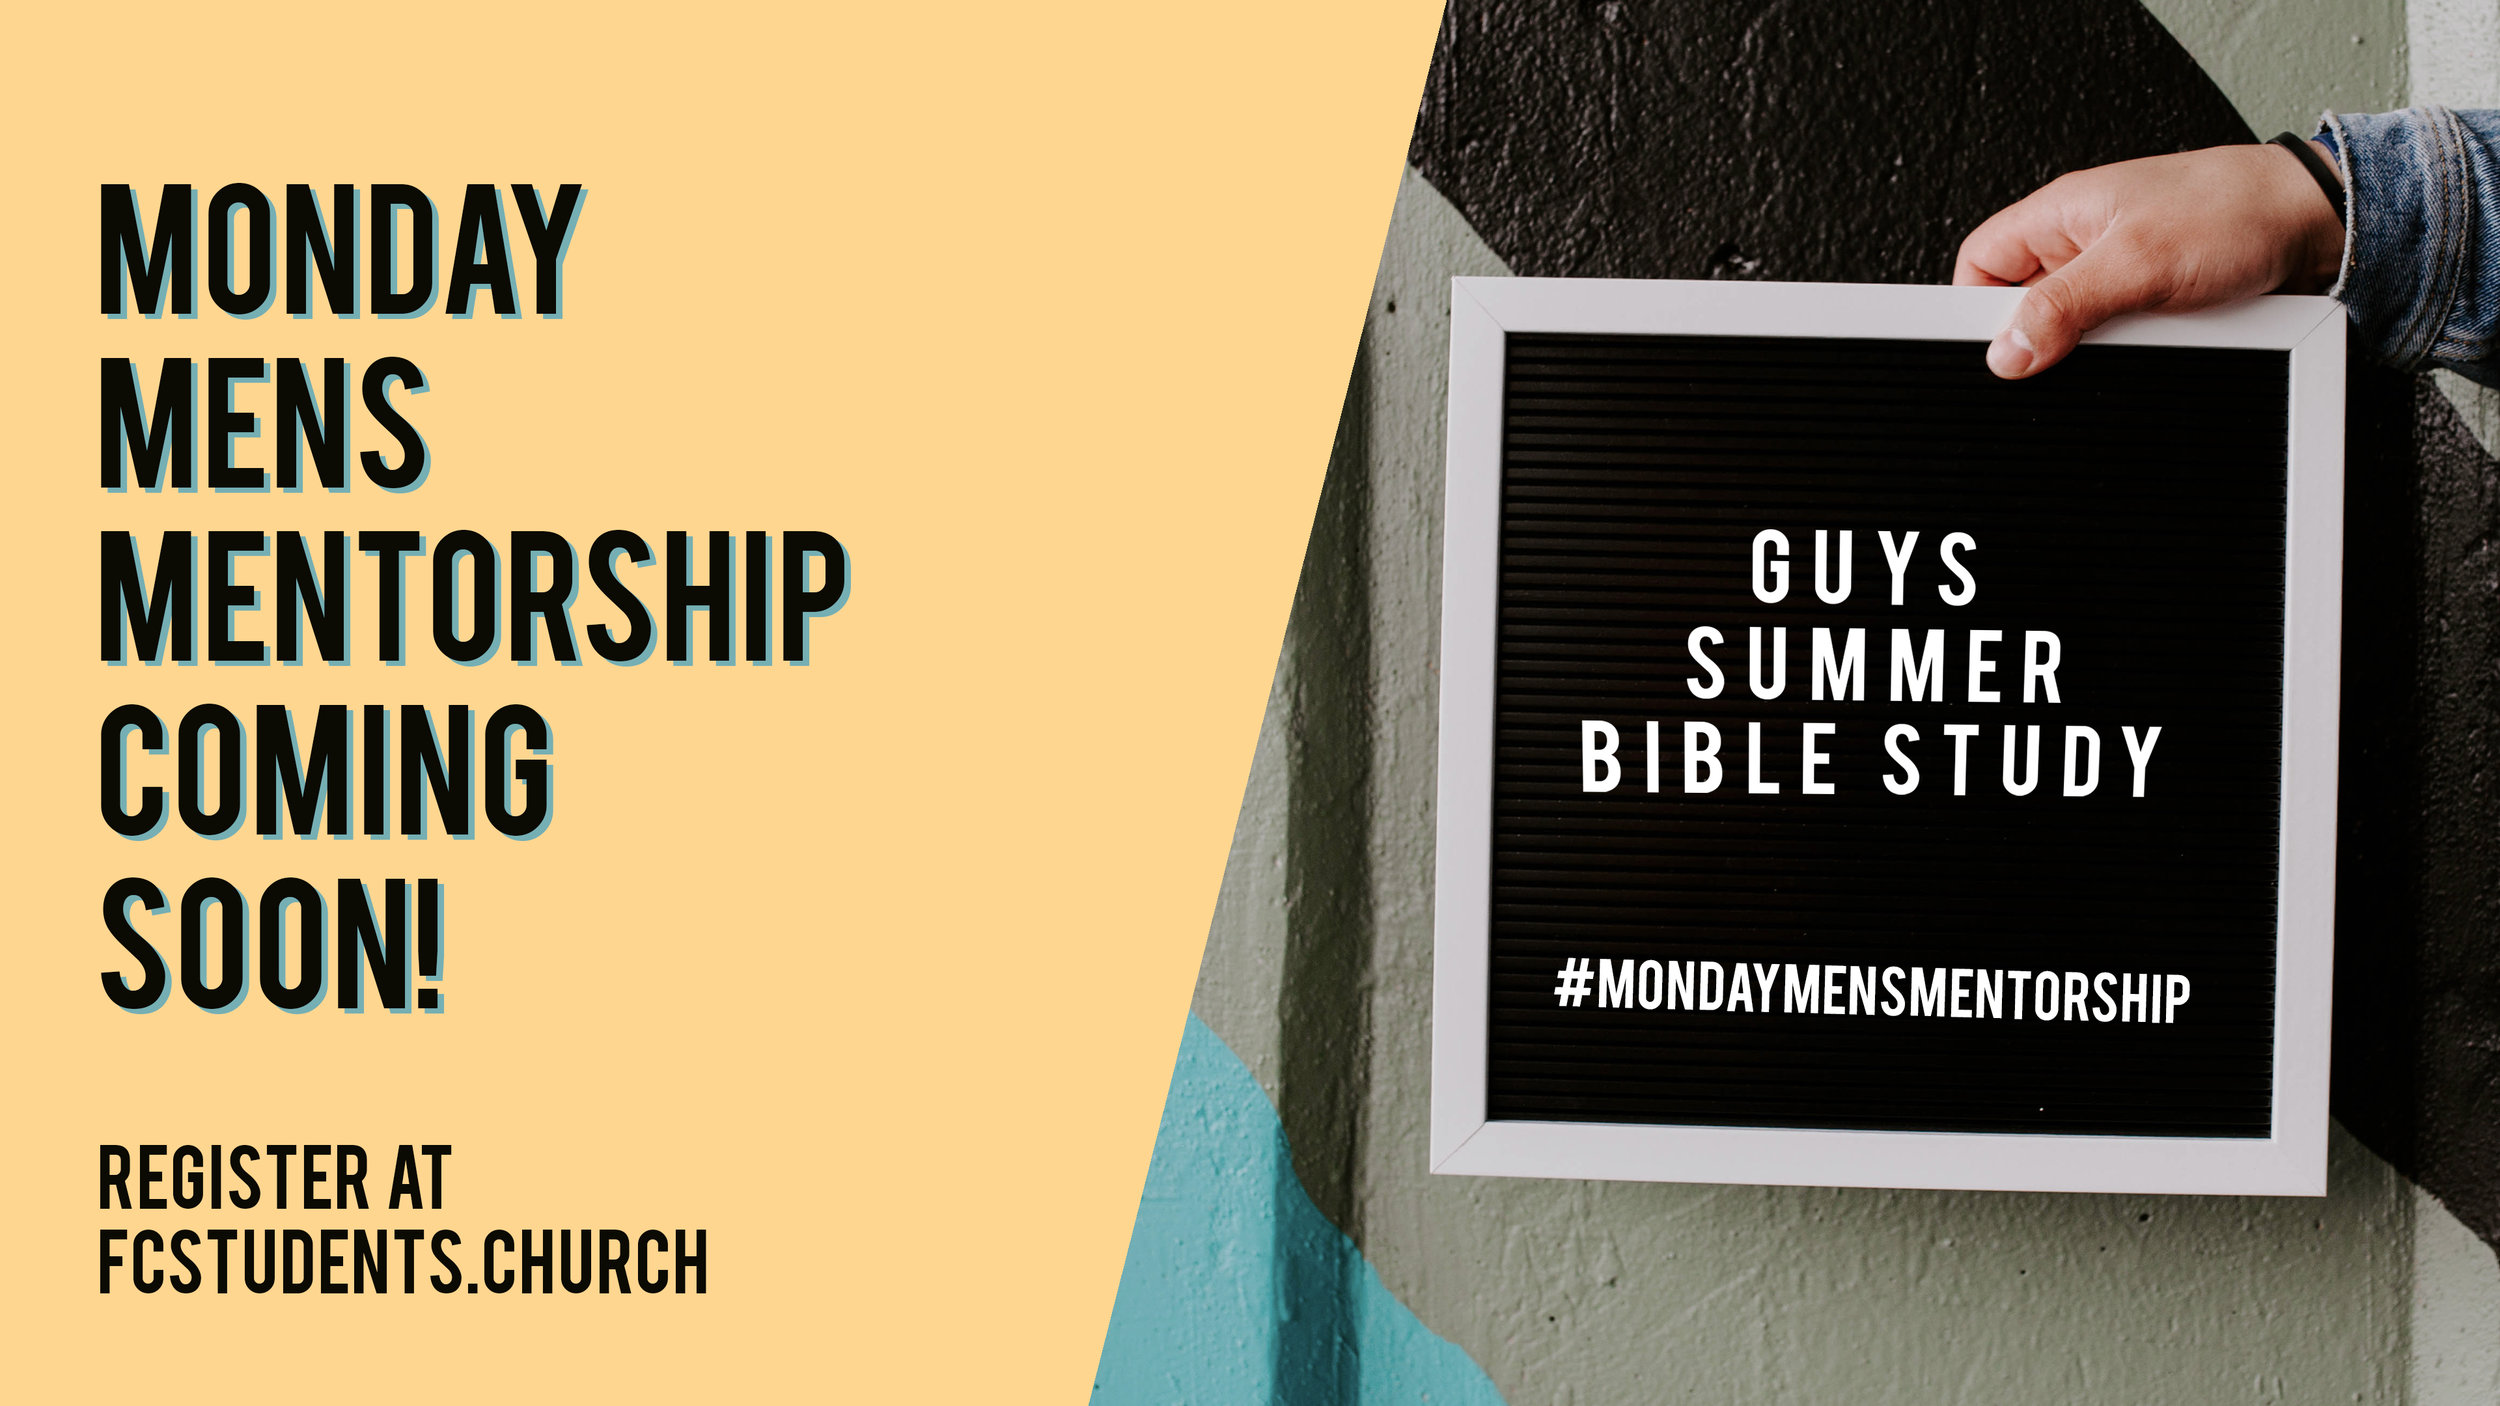 Guys Summer Bible Study!! - Join a group of men who are seeking to grow as brothers in Christ this summer. Growth SZN is here!!